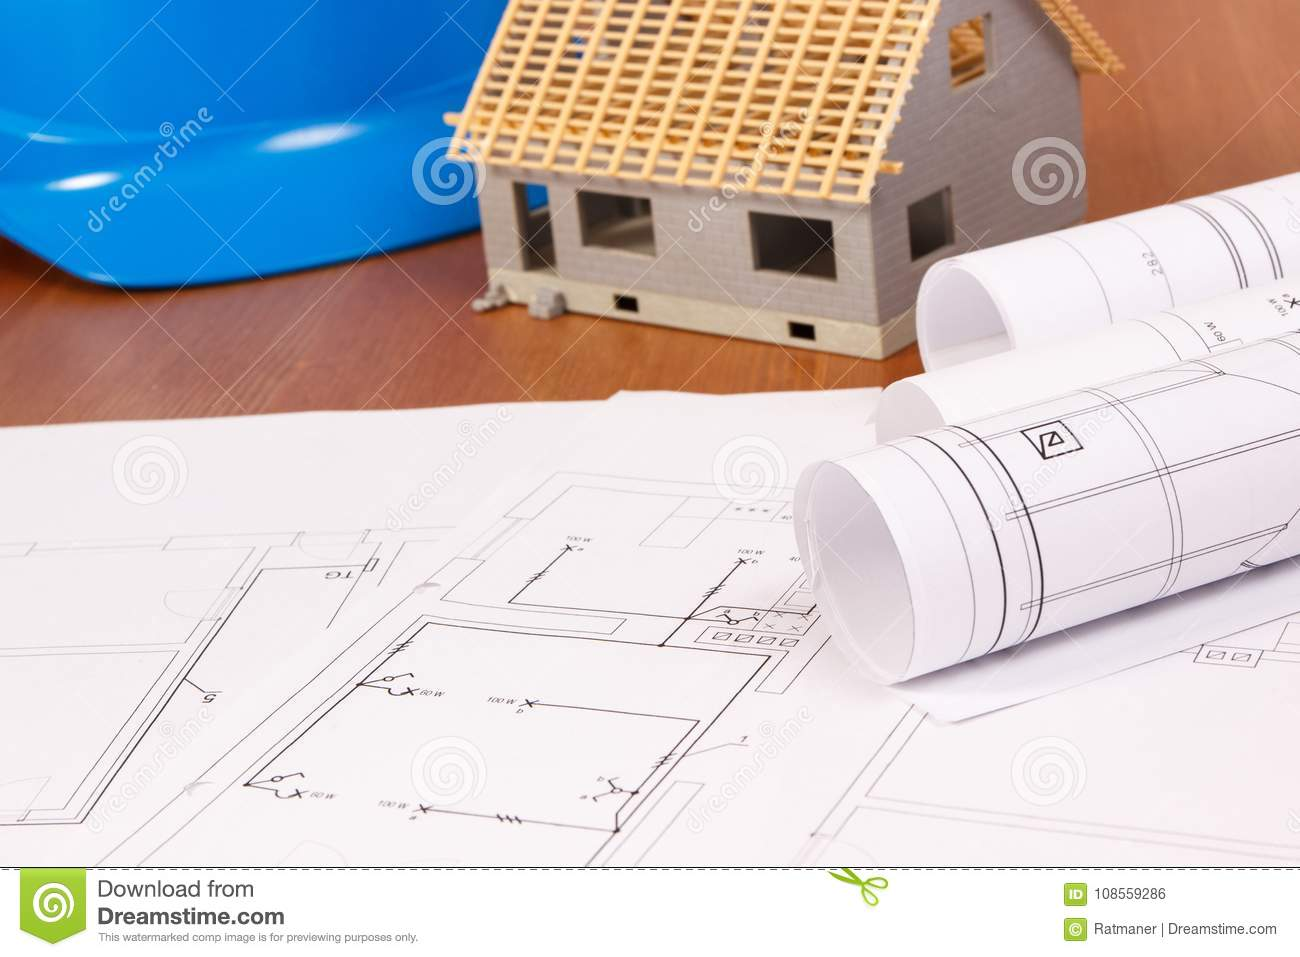 Electrical Drawings House Under Construction And Protective Blue Diagram Building Helmet Home Concept